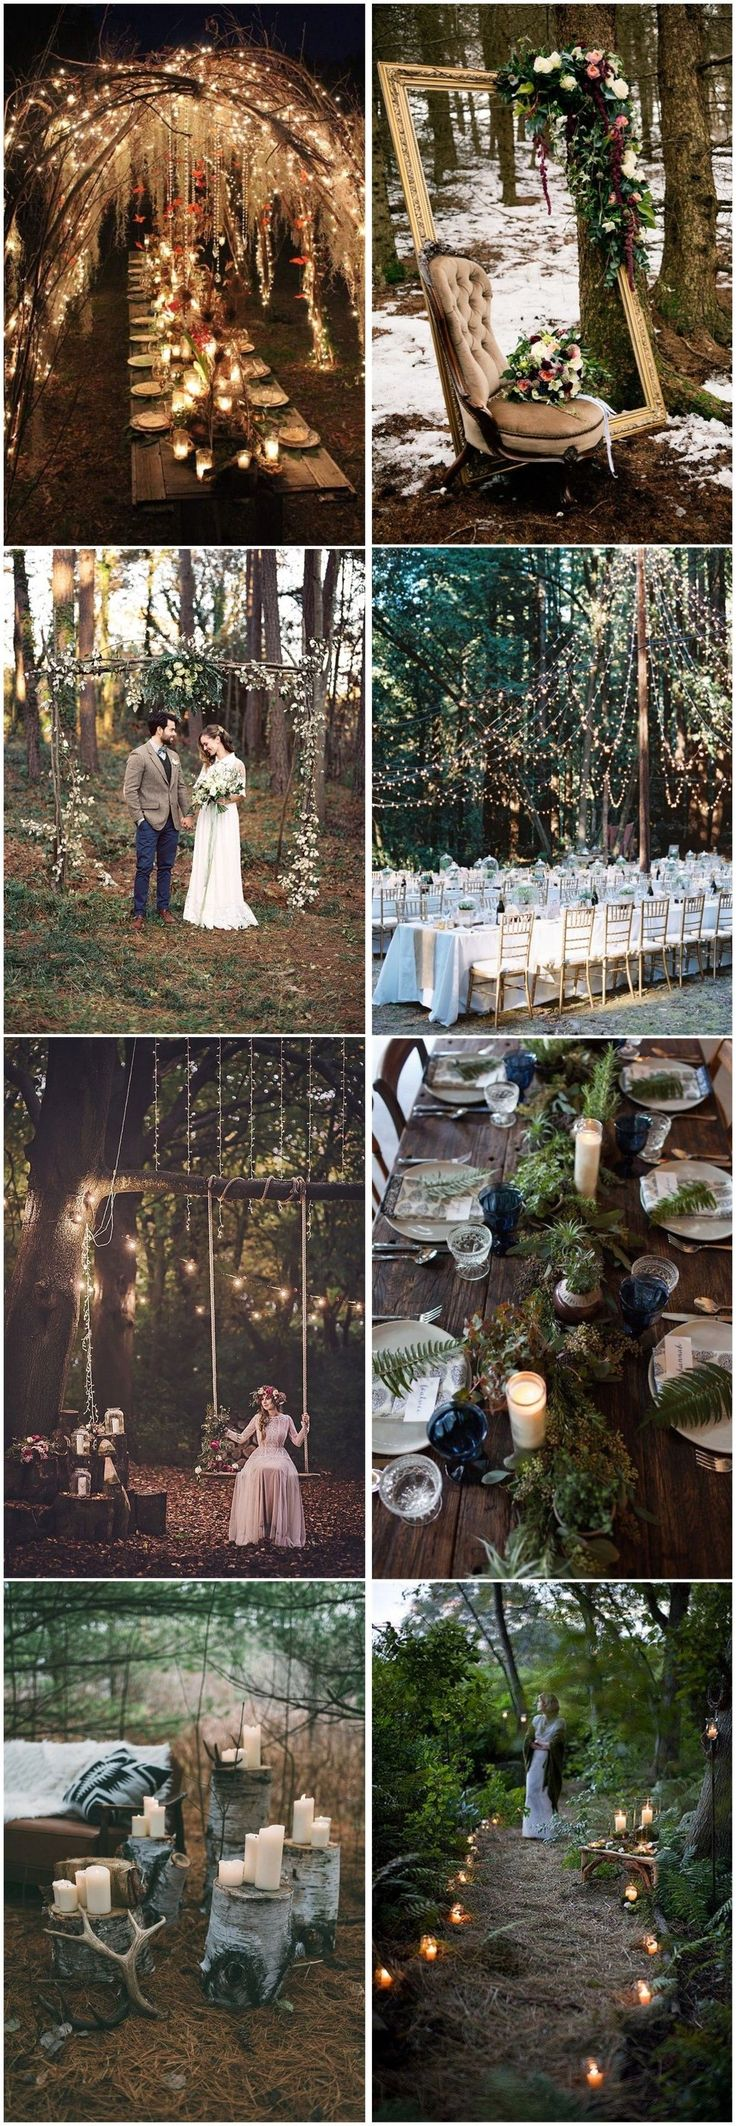 Rustic Weddings » 20 Woodland Wedding Ideas You Can Get Inspired »   ❤️ See more:  http://www.weddinginclude.com/2017/03/woodland-wedding-ideas-you-can-get-inspired/